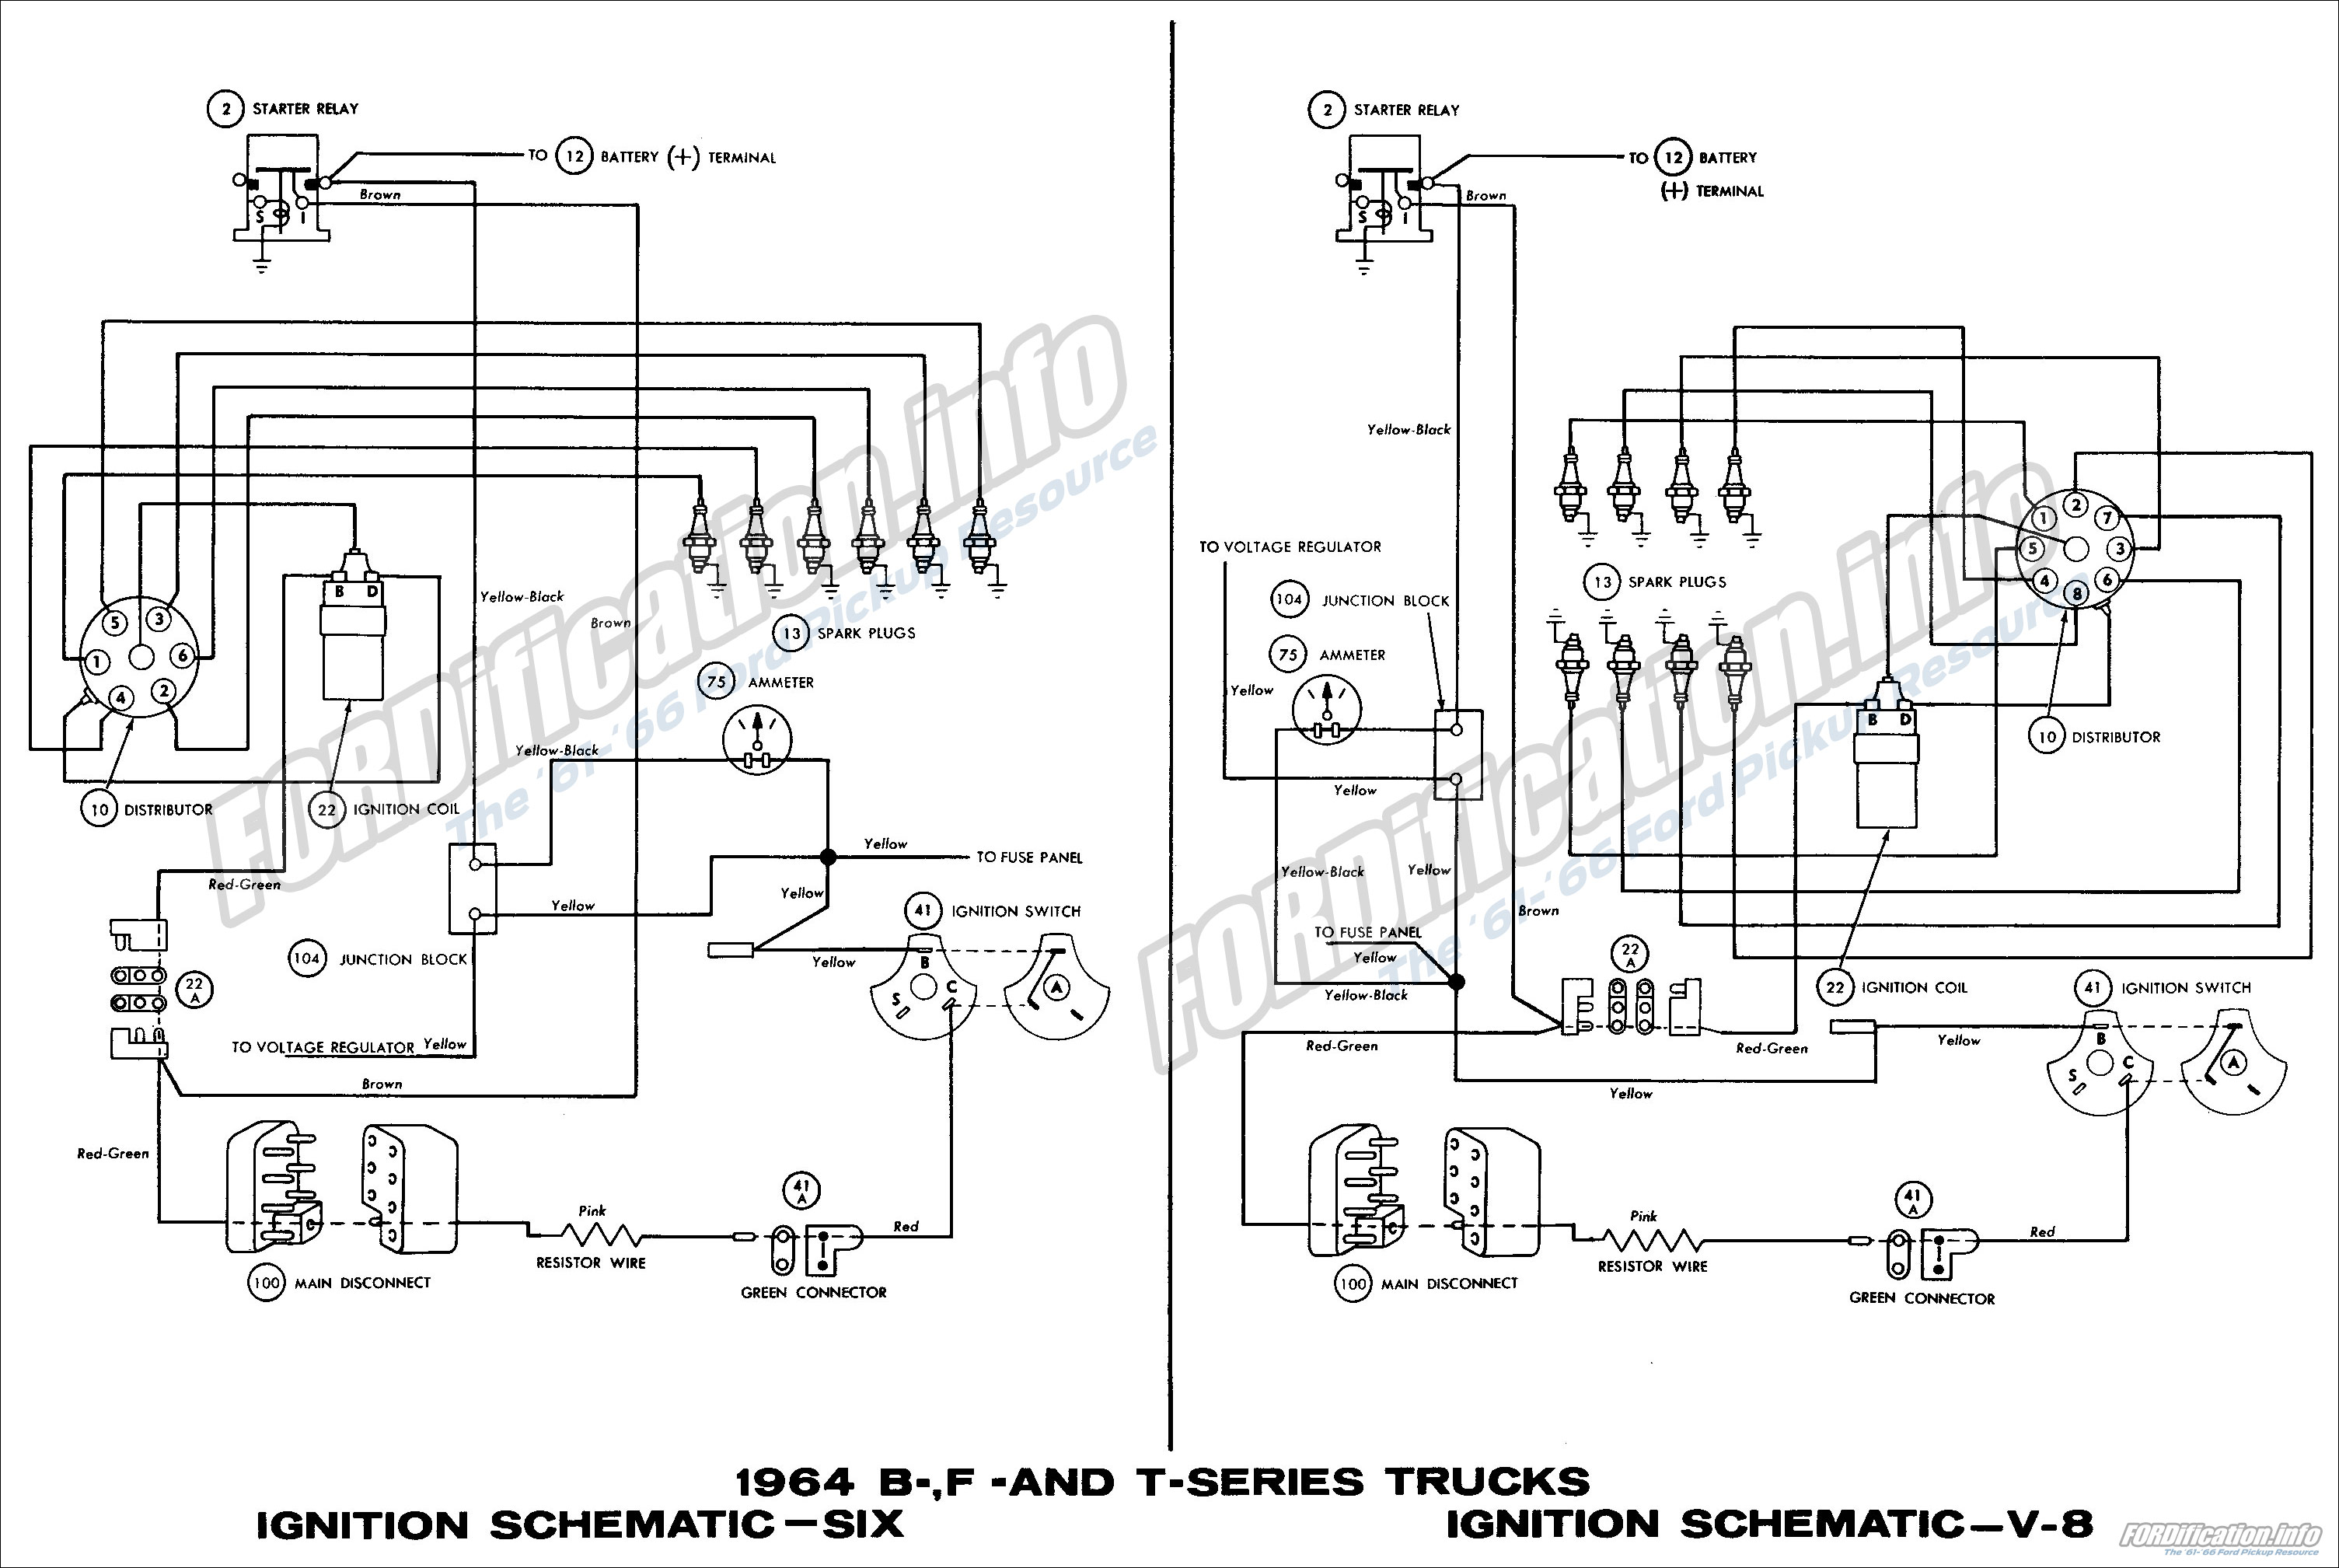 1965 Mustang Marker Light Wiring Diagram 1964 Ford Truck Wiring Diagrams Fordification Info The